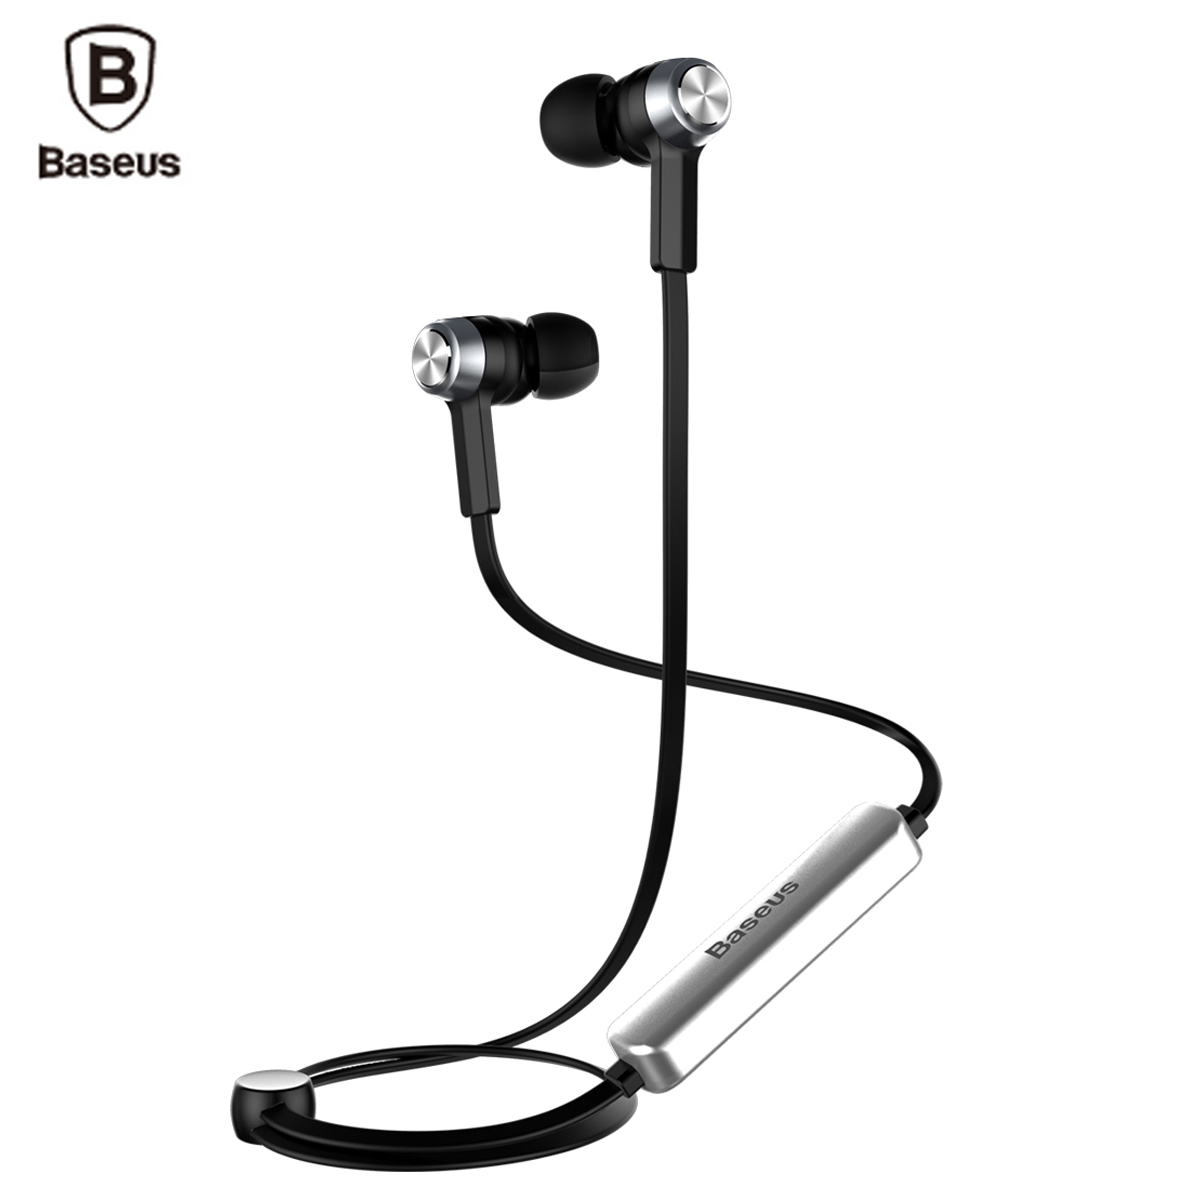 Baseus Magnet Wireless Bluetooth Earphone Headphone For iPhone X 8 7 Samsung Sport Wireless Headset With Mic Stereo Earpieces 1